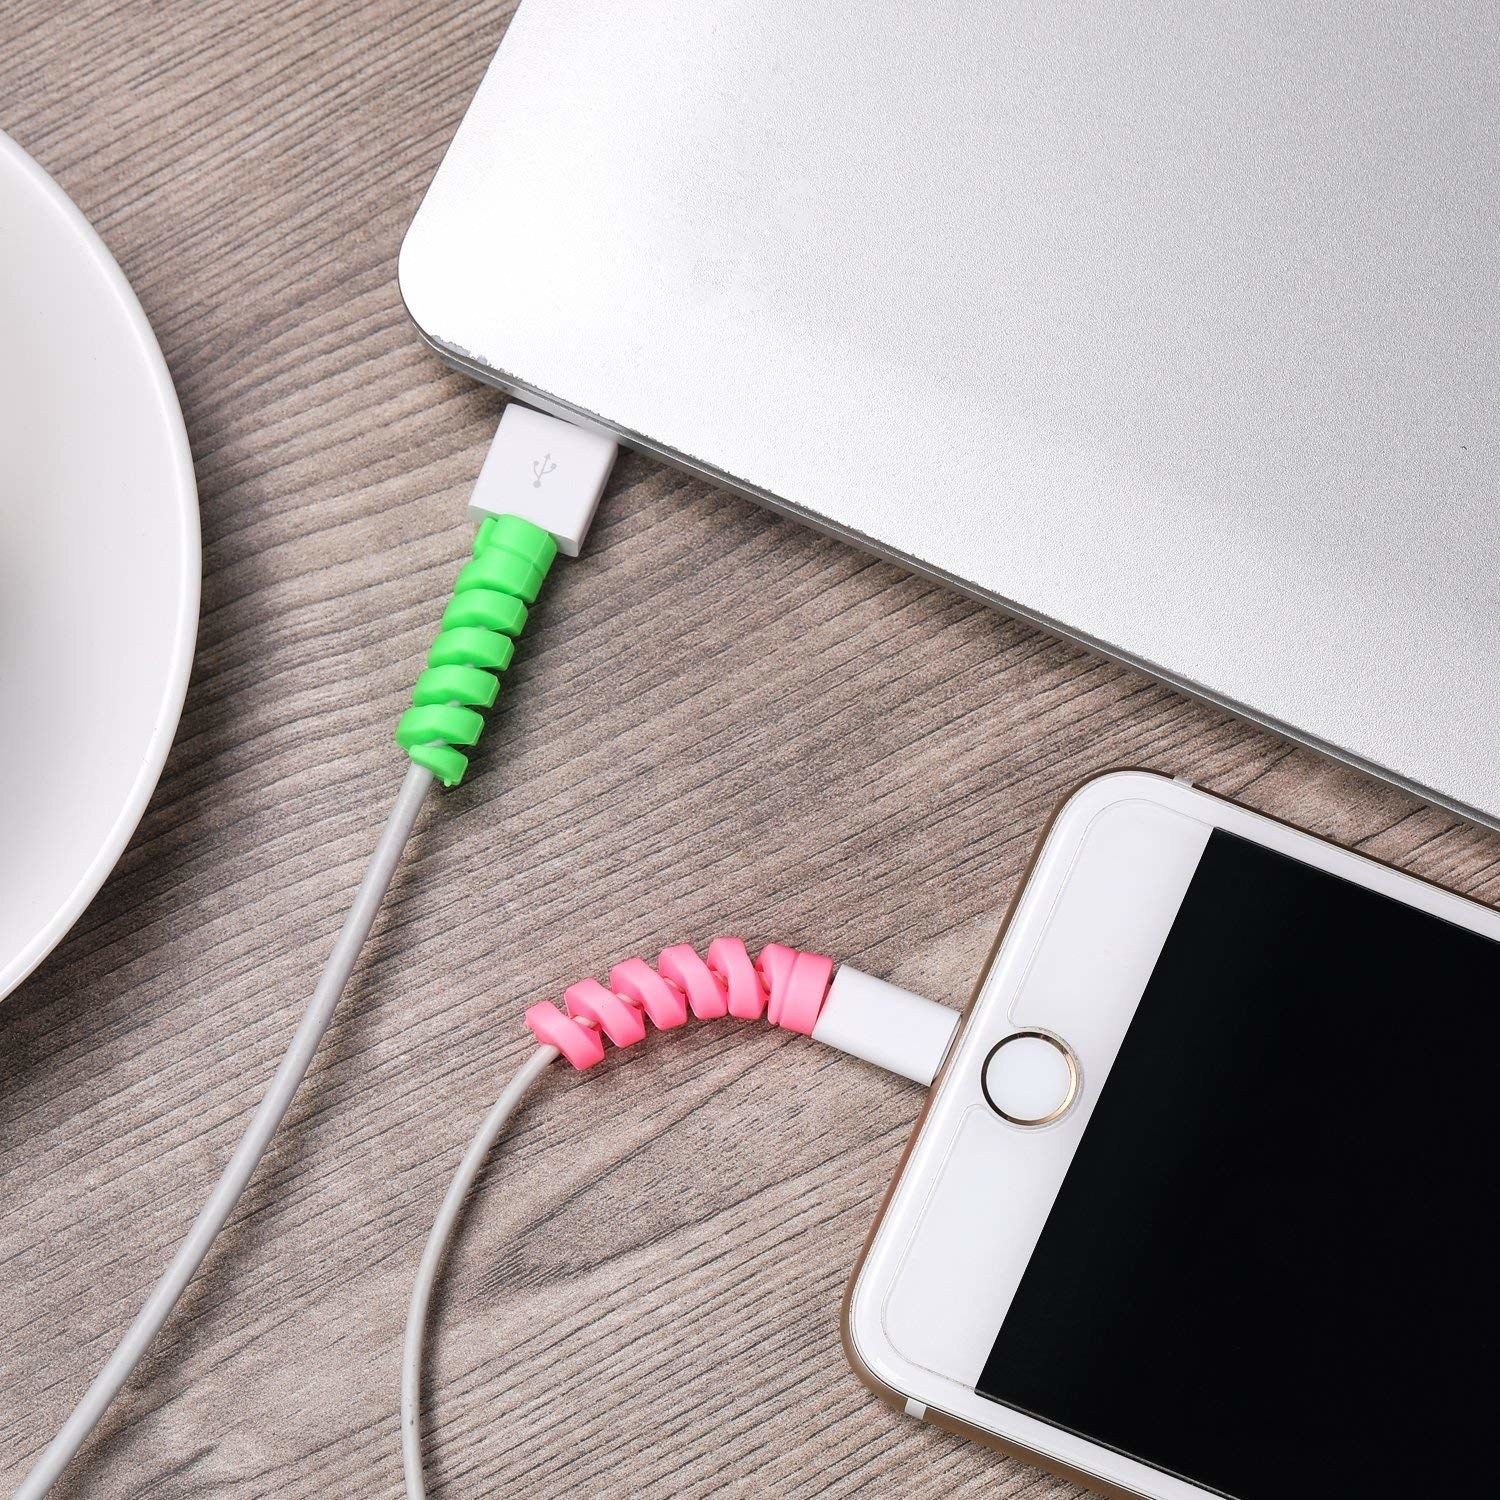 Spiral charger protectors on a phone and a tablet